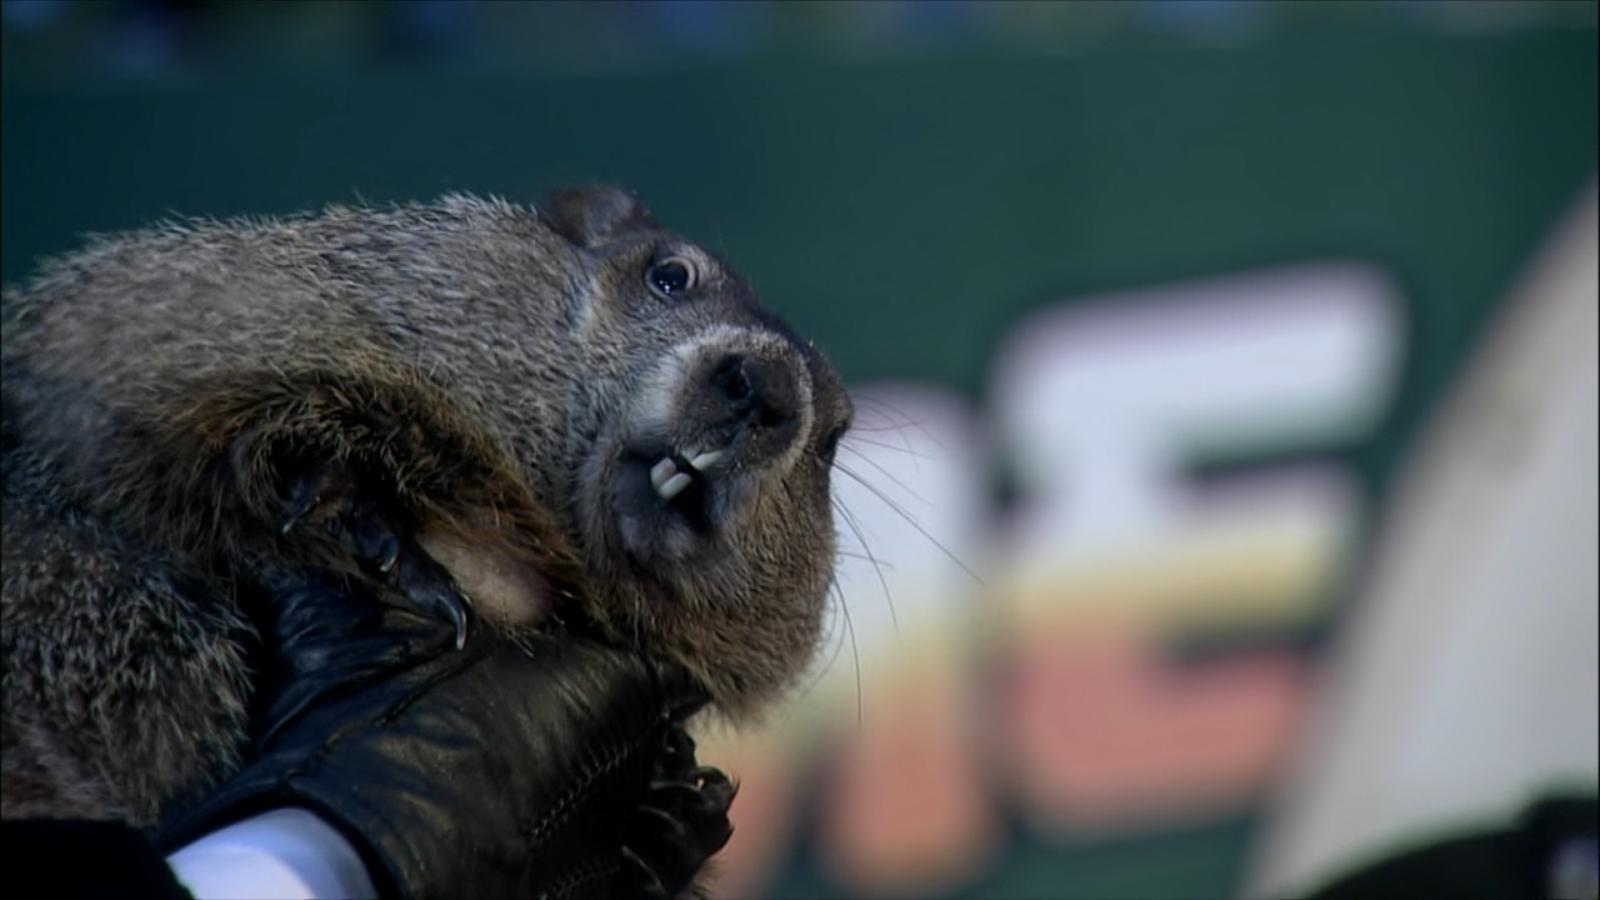 Uncategorized Groundhog Day Videos groundhog day video facts